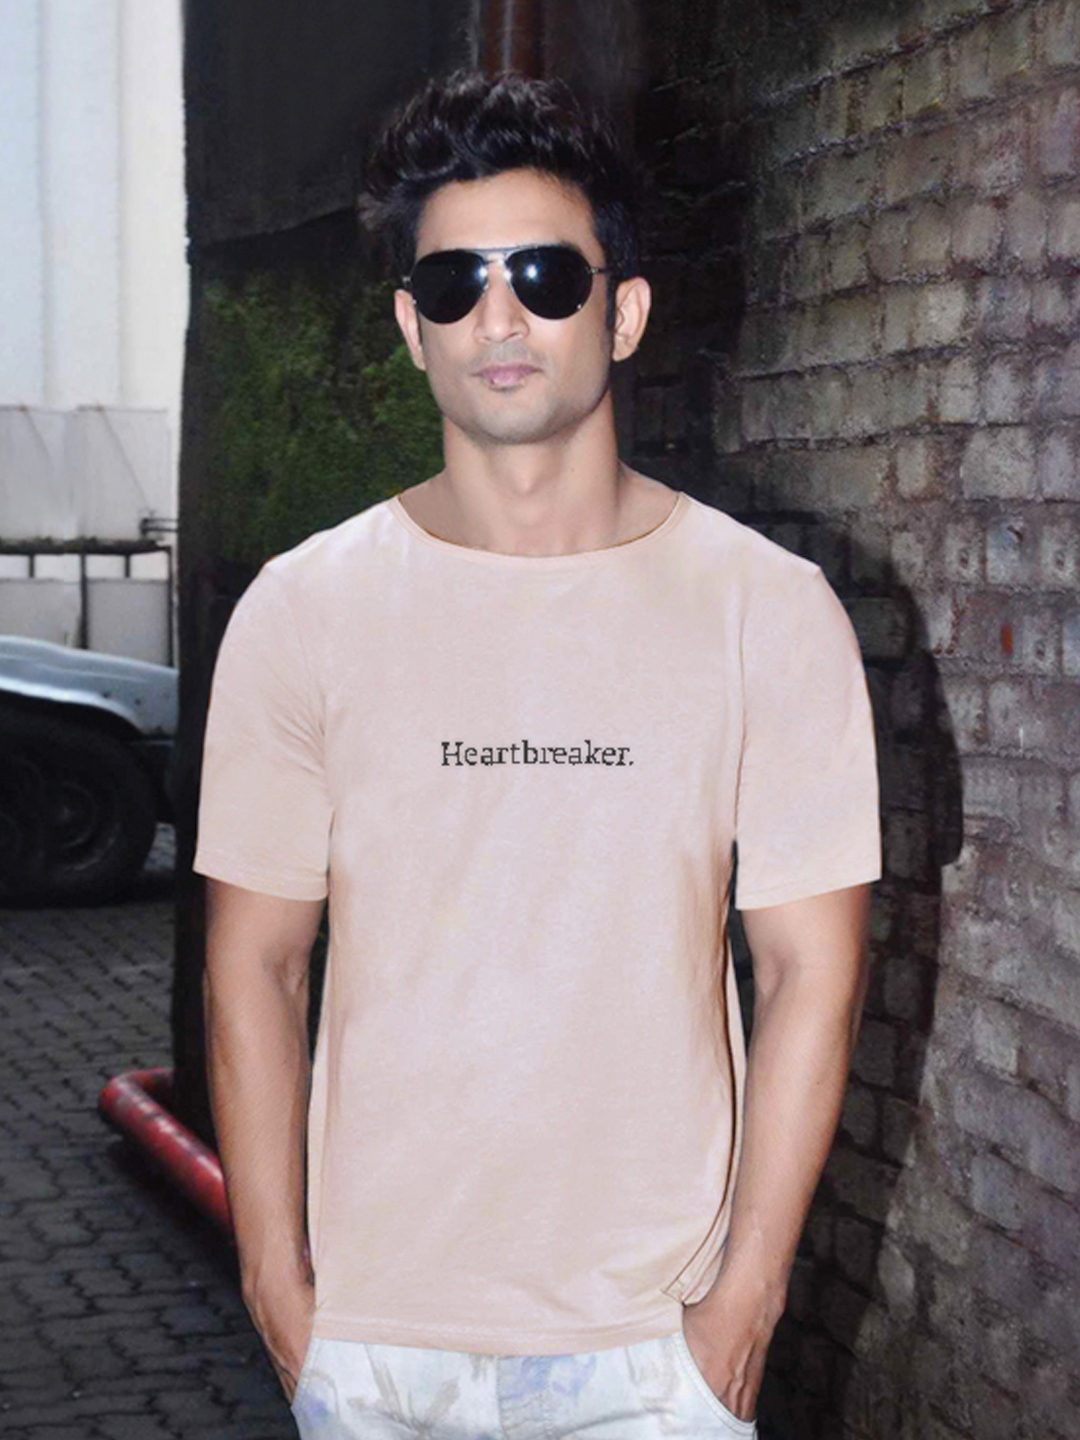 Bollywoo Beige In The Style Of Sushant Rajput Heartbreaker Print T-shirt 1